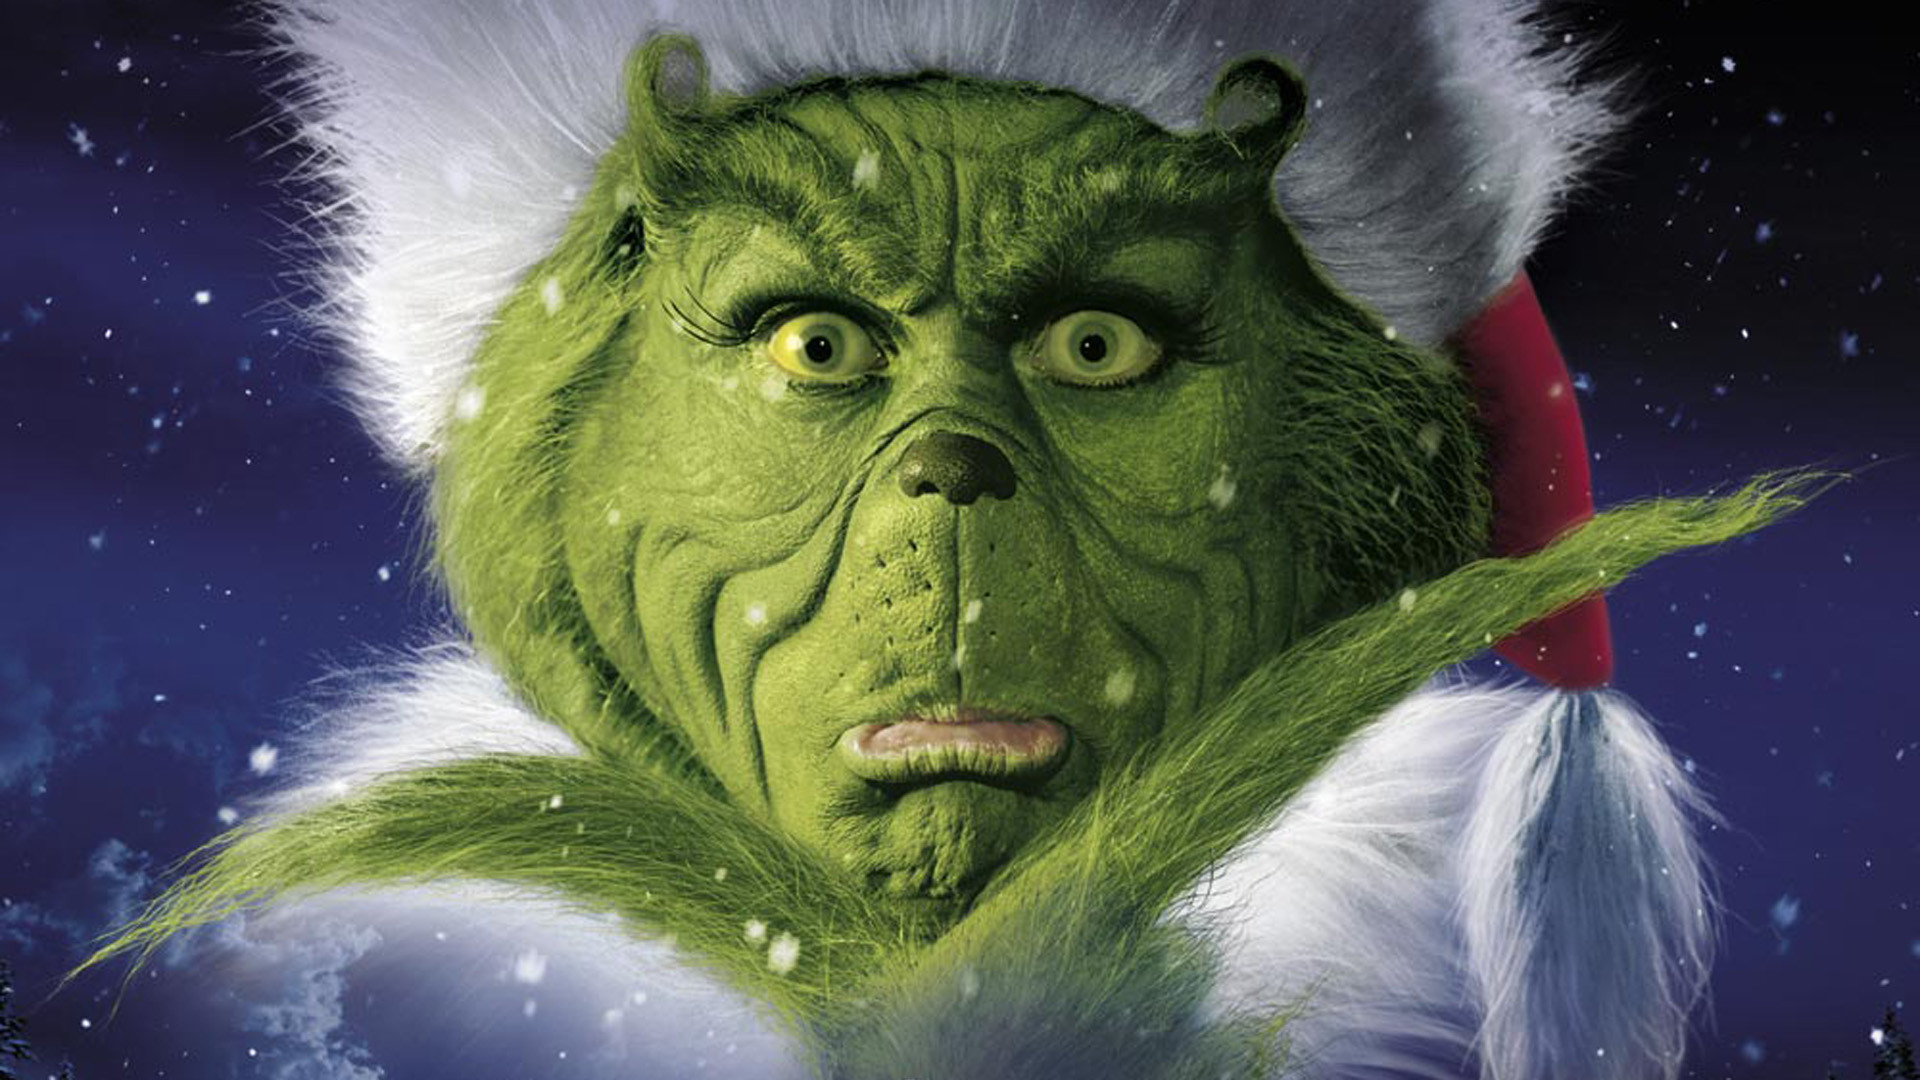 ... 416kB, The Grinch Portrait Christmas Wallpaper - Christmas Cartoon